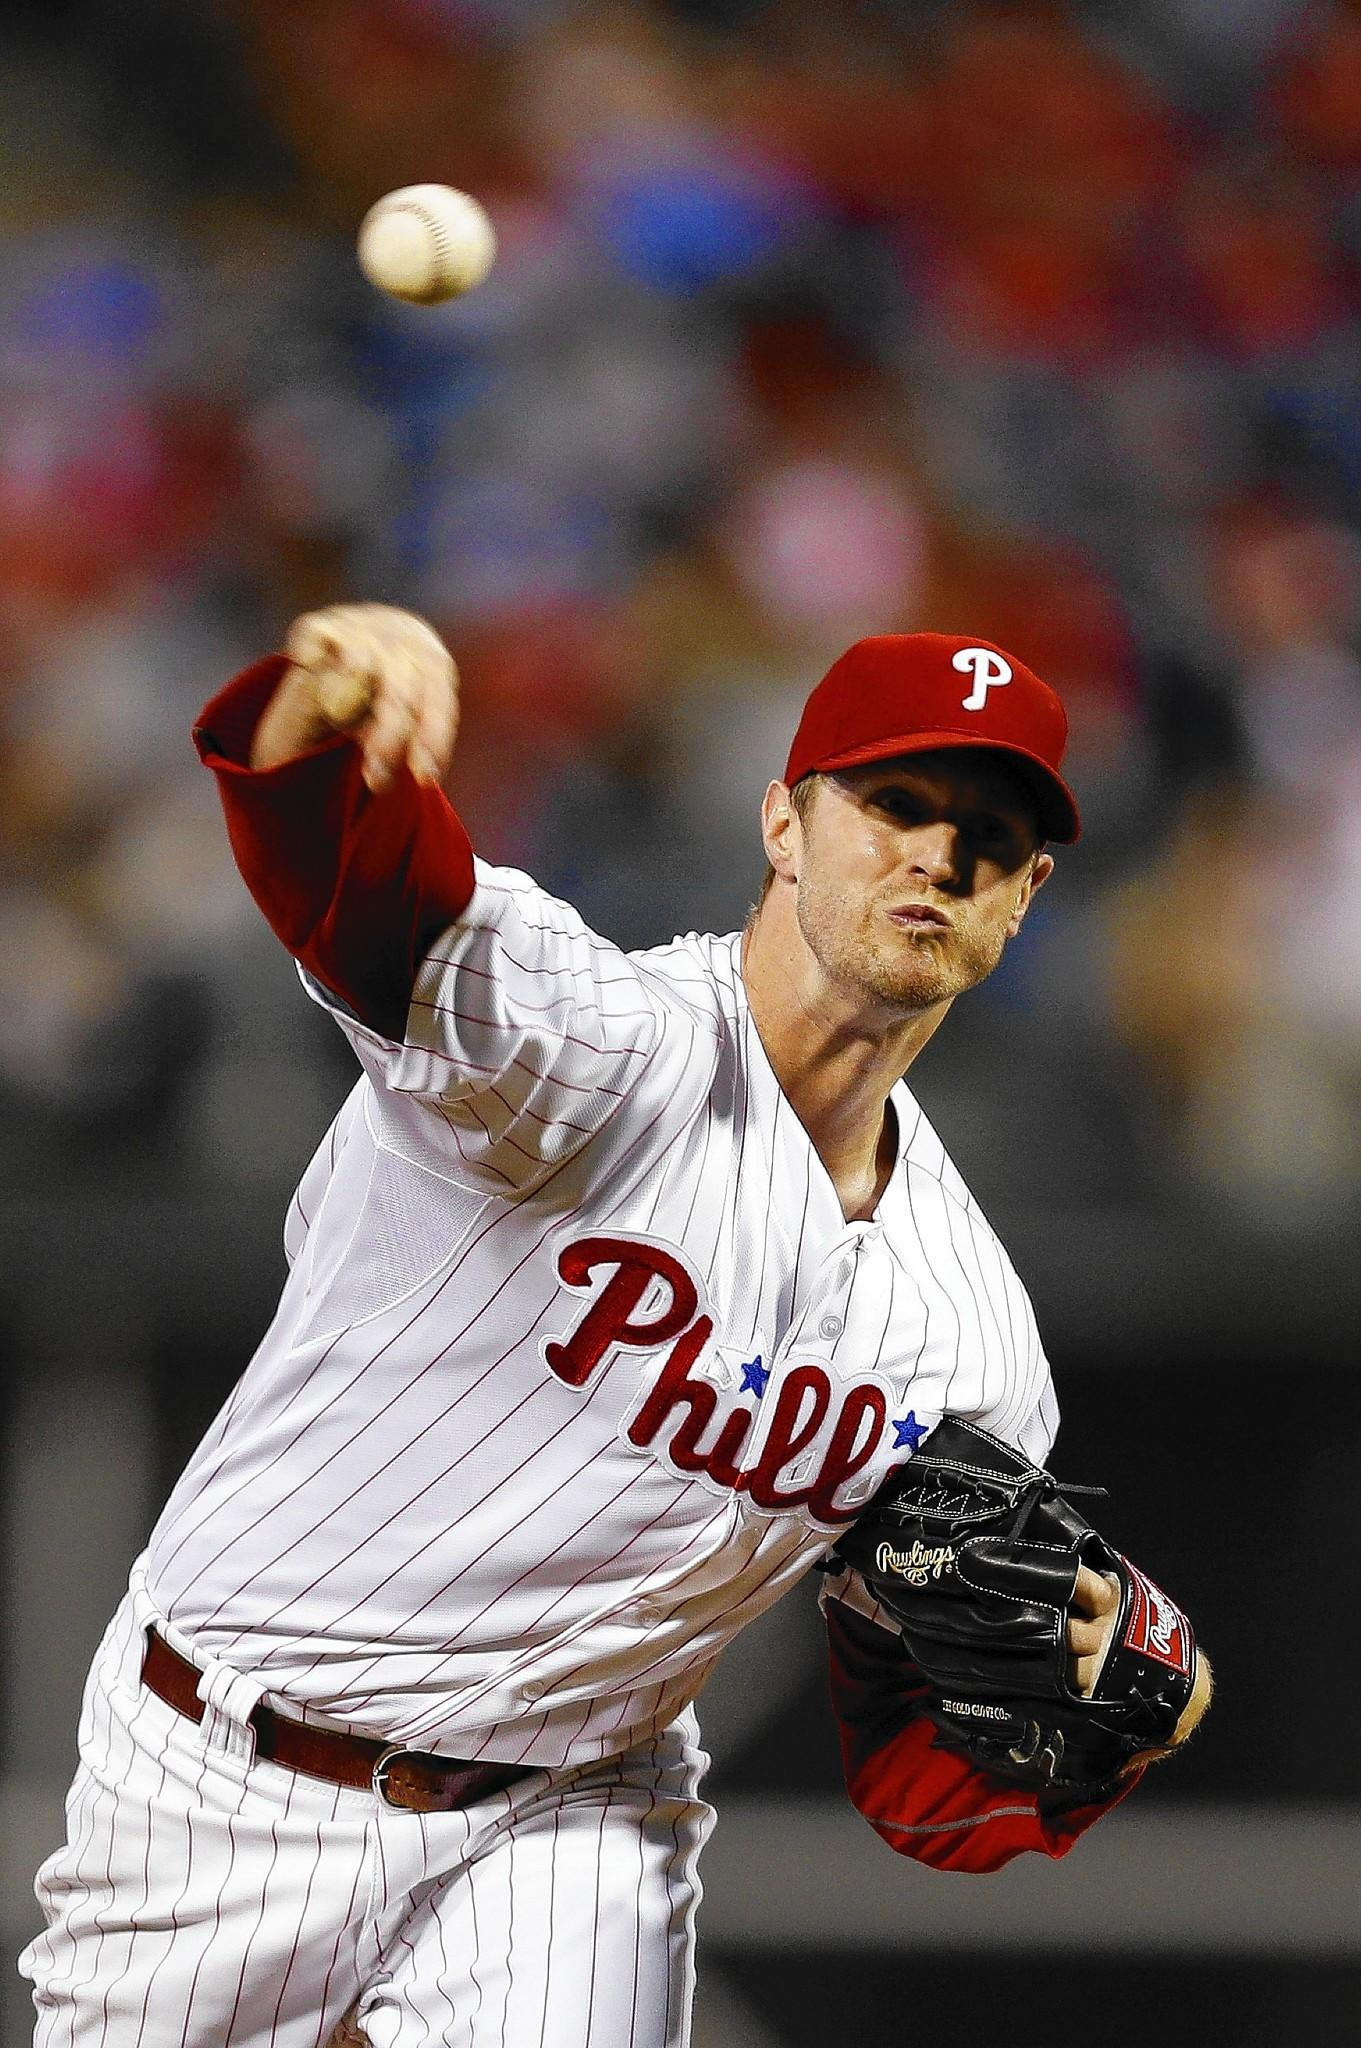 Starting pitcher Kyle Kendrick #38 of the Philadelphia Phillies throws a pitch during the game against the Colorado Rockies at Citizens Bank Park on August 22, 2013 in Philadelphia, Pennsylvania.